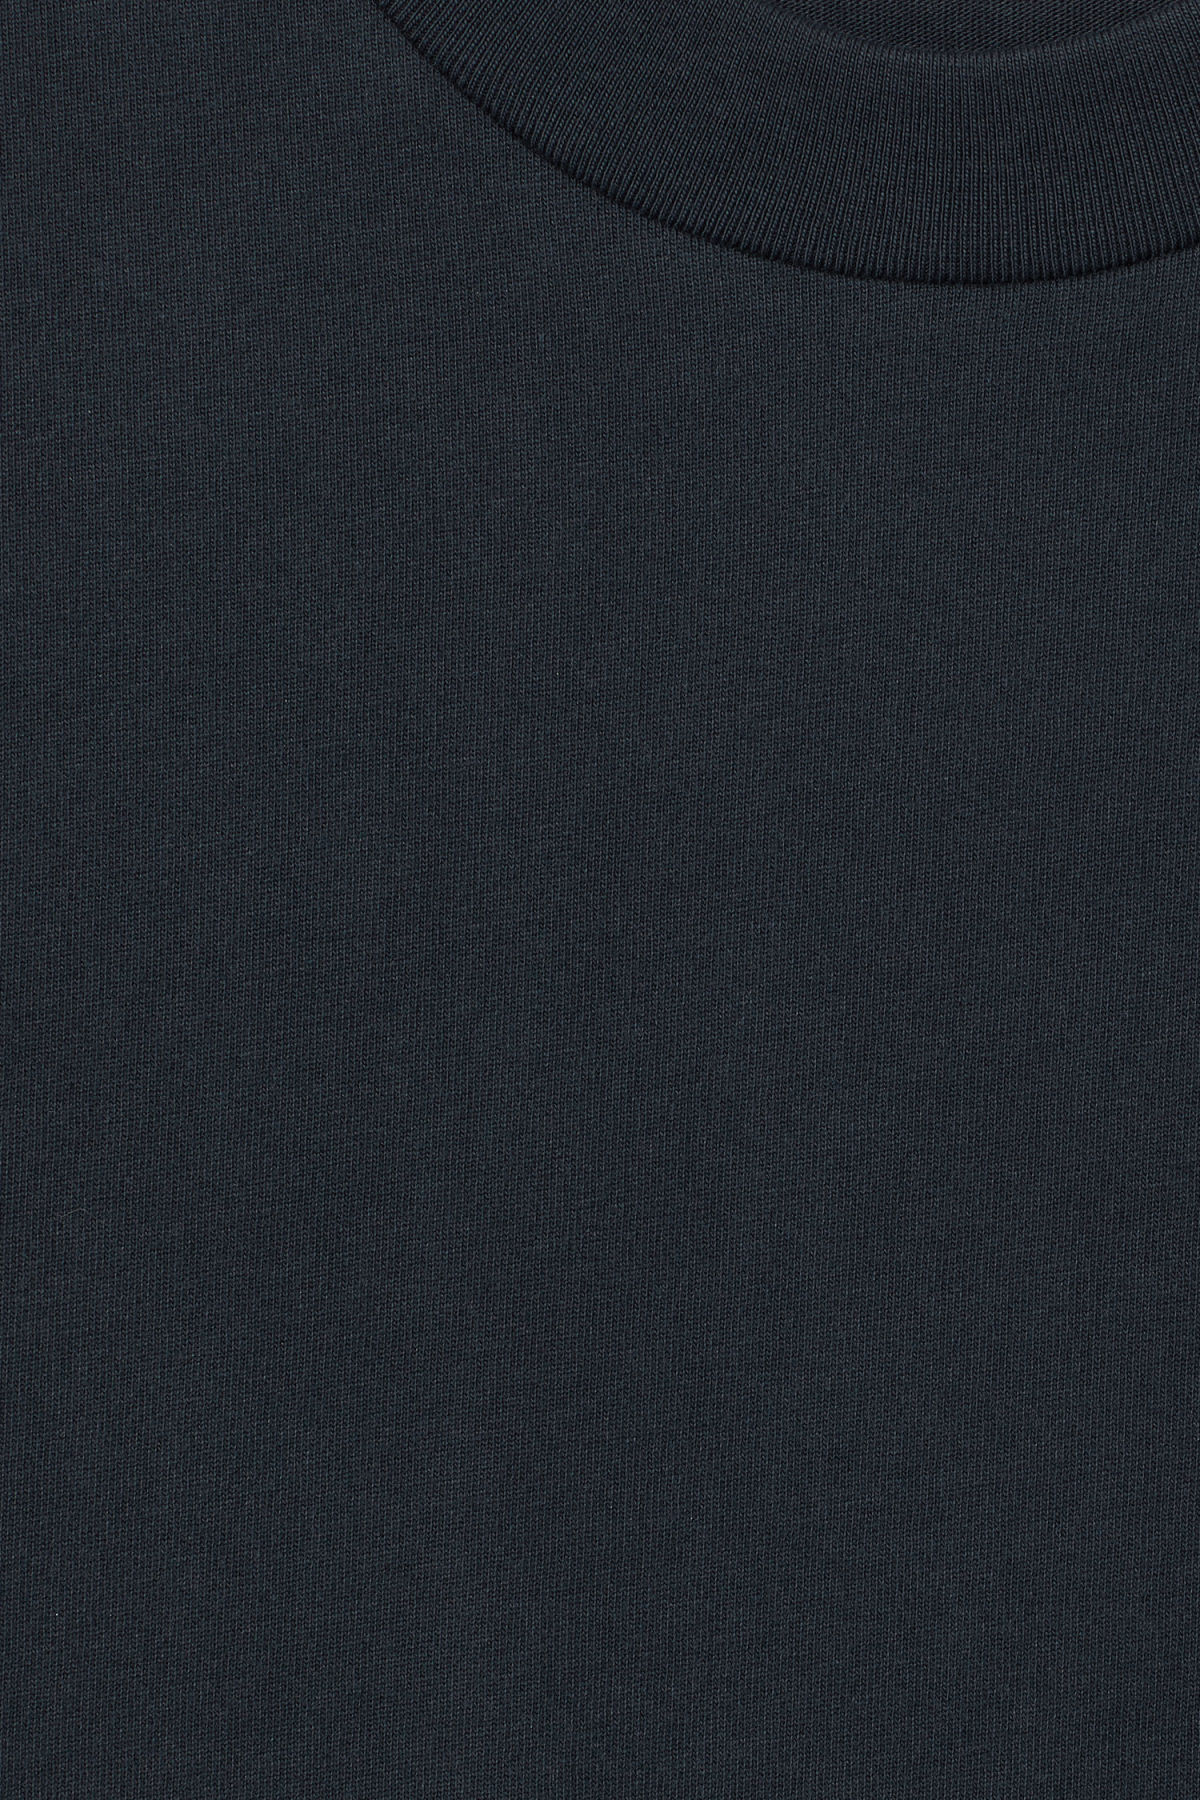 Detailed image of Weekday great t-shirt in blue